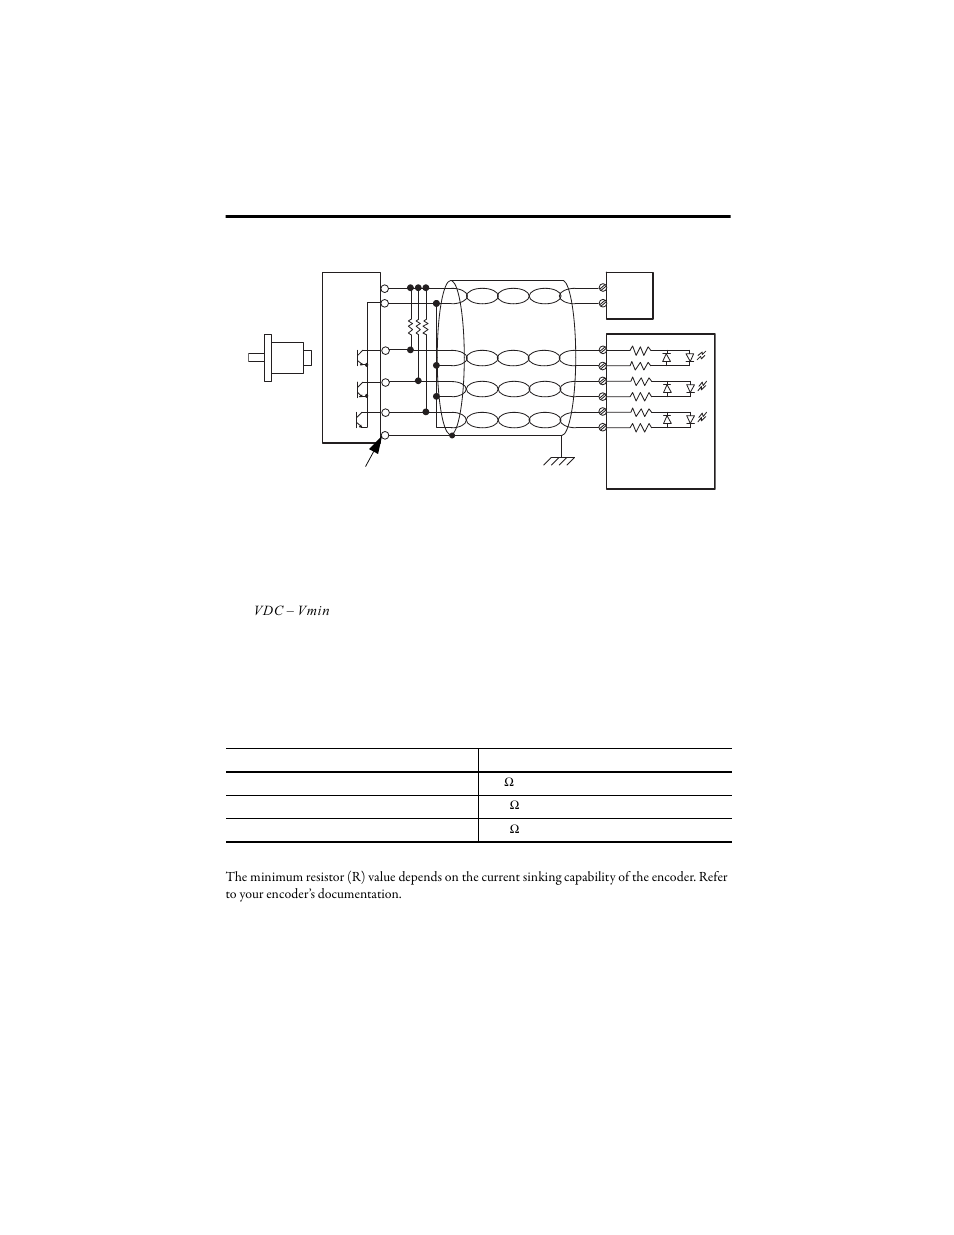 Figure 5 - single-ended encoder wiring Vdc vmin | Rockwell Automation 1769- HSC Compact High Speed Counter Module User Manual | Page 15 / 32  sc 1 st  manualsdir.com : 1769 hsc wiring - yogabreezes.com